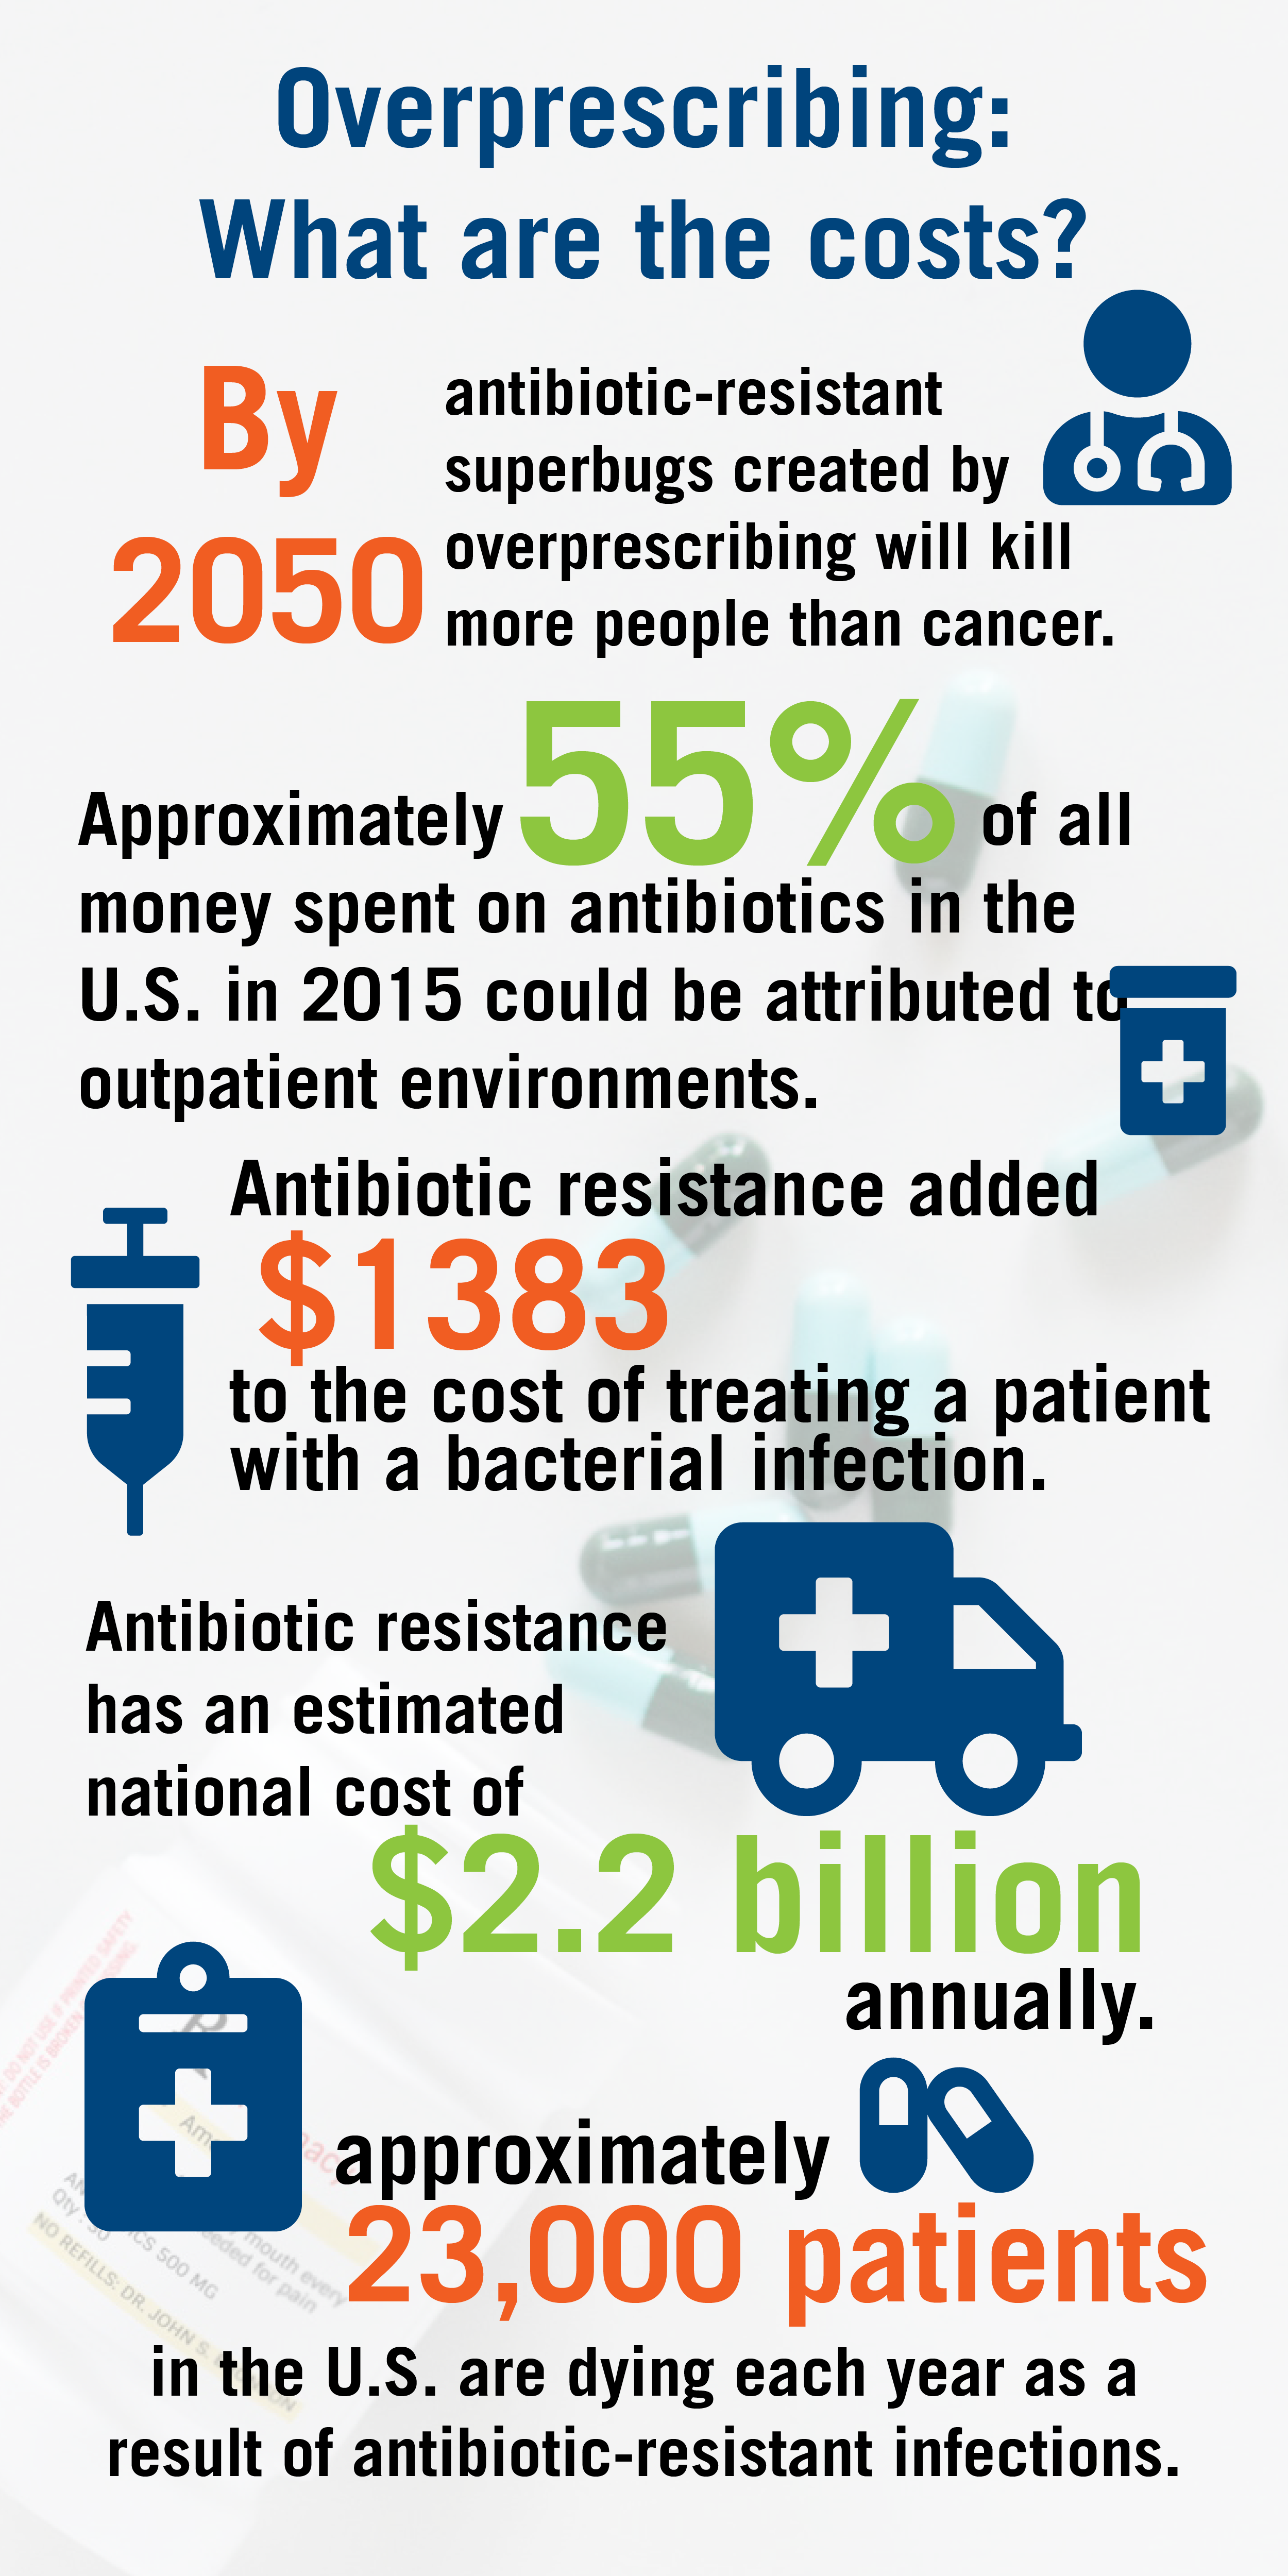 33a72d2ed9ff The Centers for Disease Control and Prevention (CDC) stated in a 2017  report that 47 million unnecessary antibiotic prescriptions are written  every year in ...